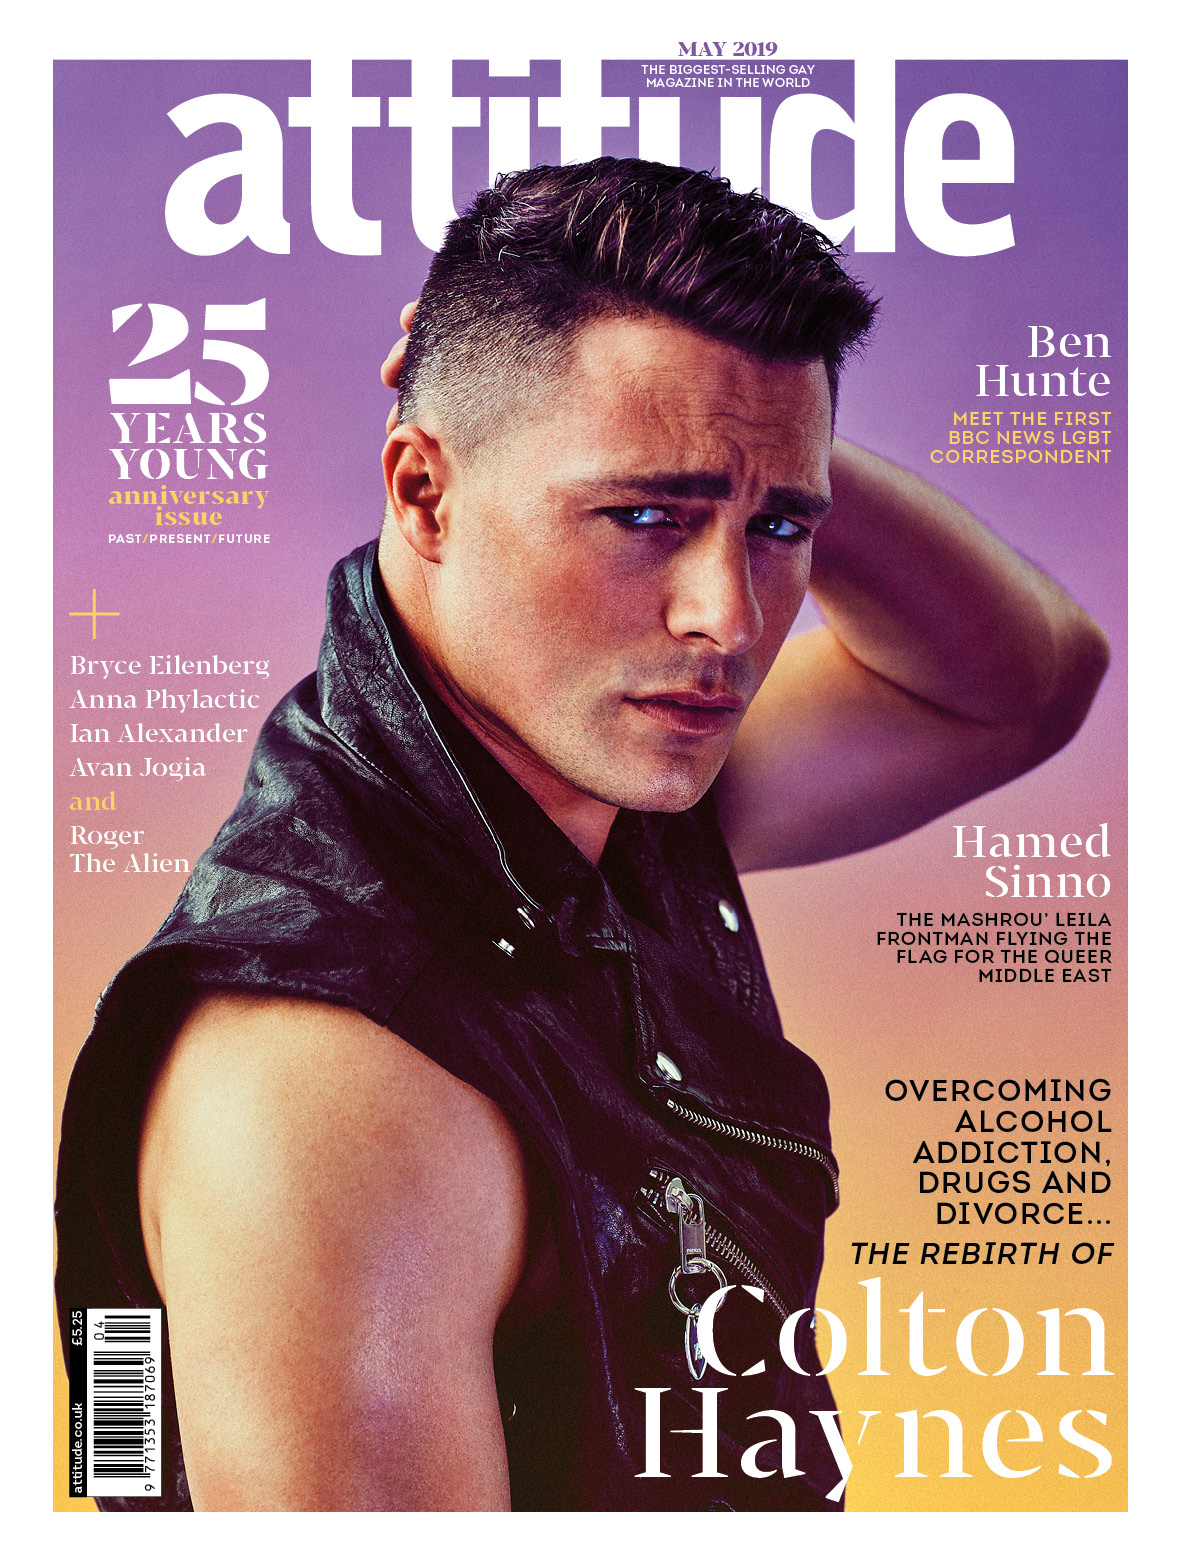 Newly Sober Colton Haynes Reveals He Was Placed on a 5150 Psychiatric Hold During 'Downward Spiral'